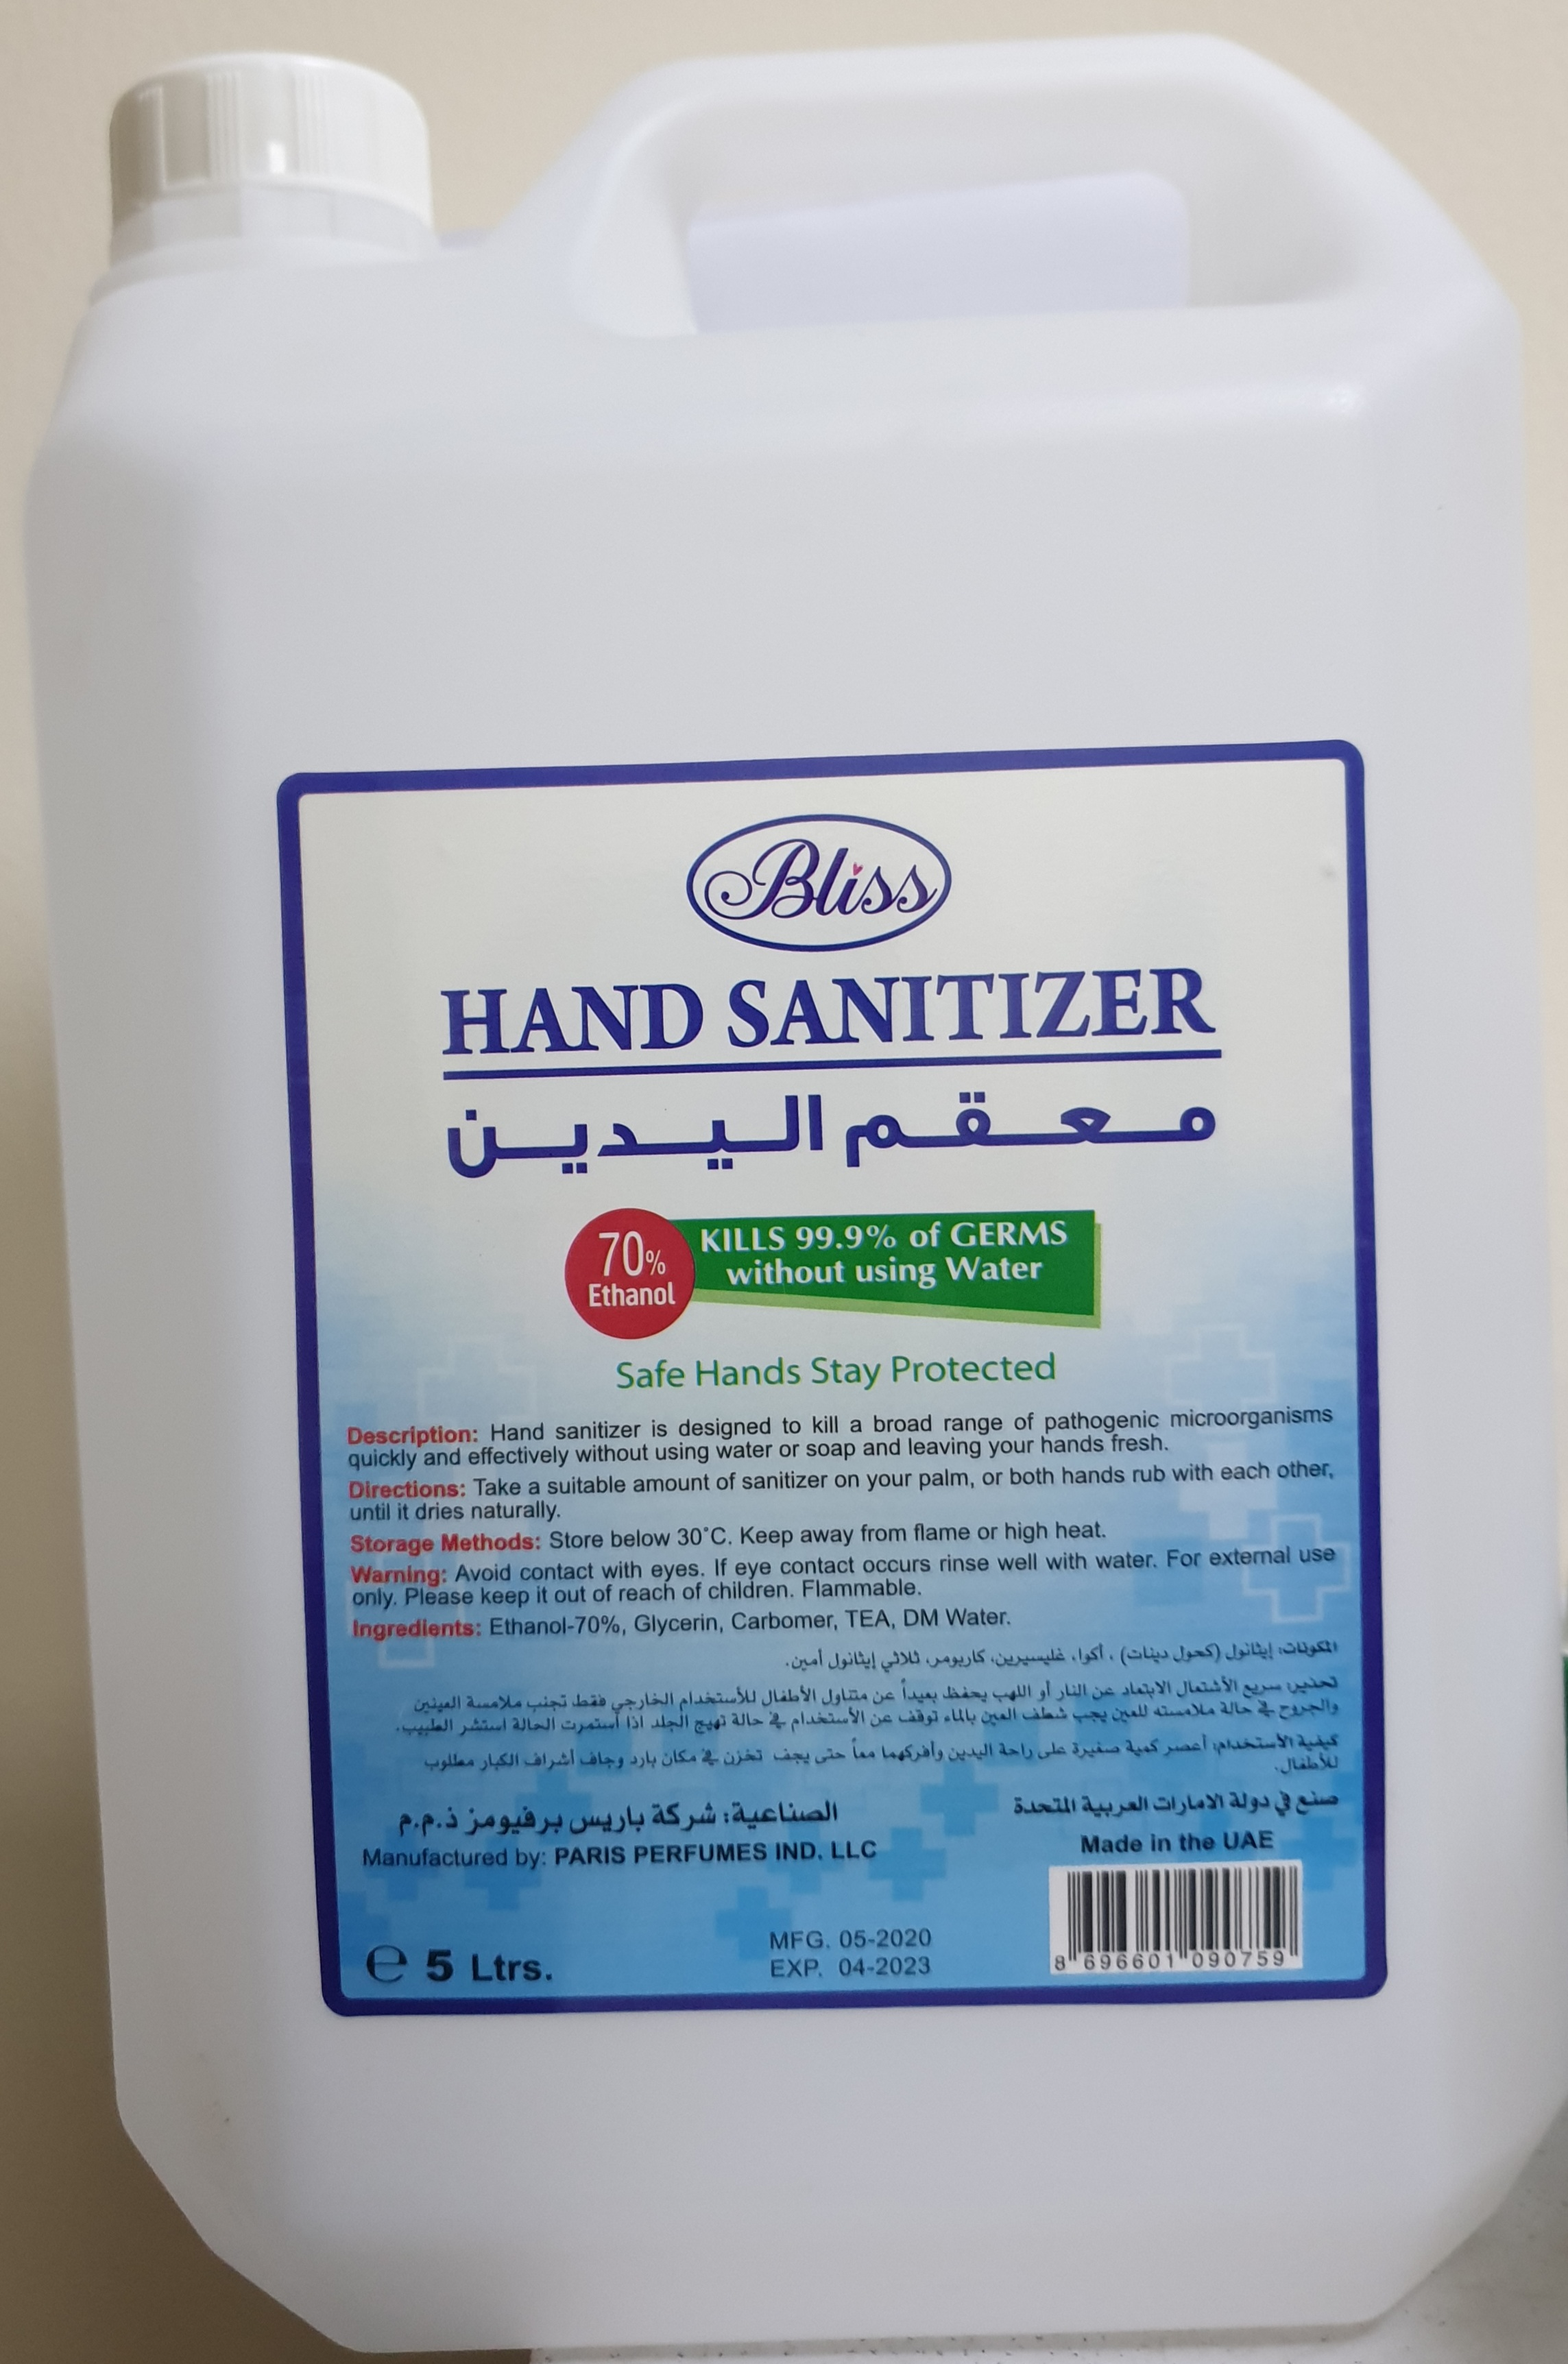 Bliss Sanitizers